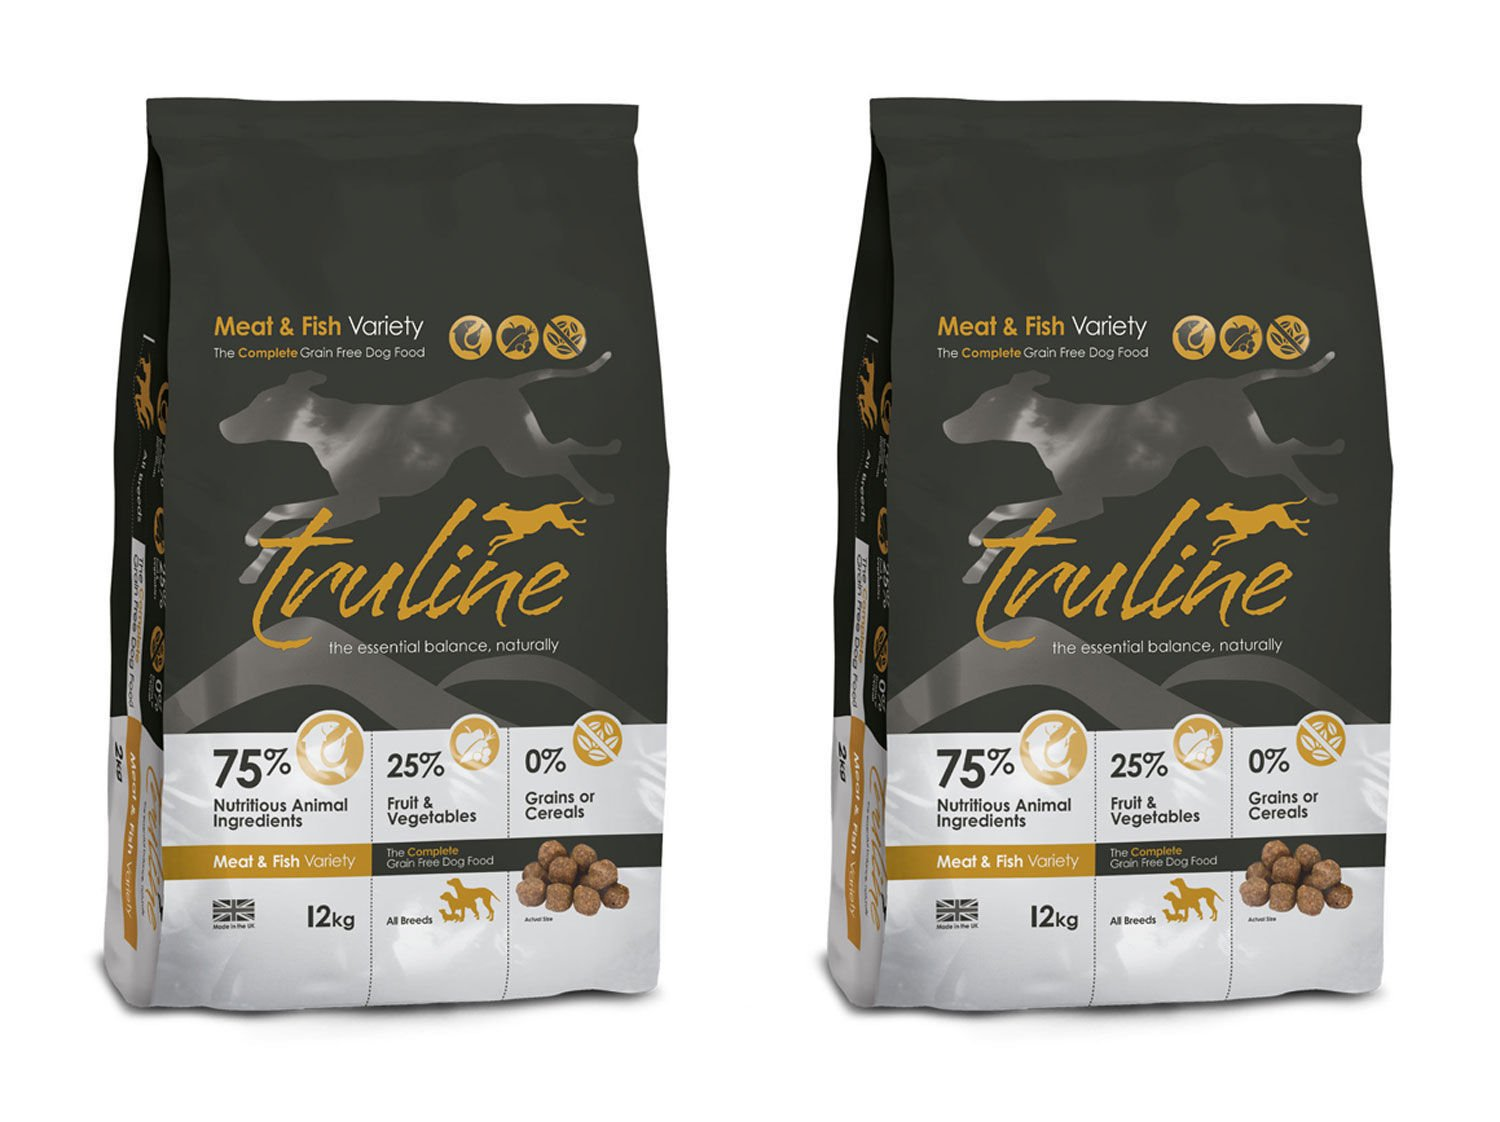 2 x 12kg Truline Meat and Fish Variety Dry Dog Food 2 x 12kg